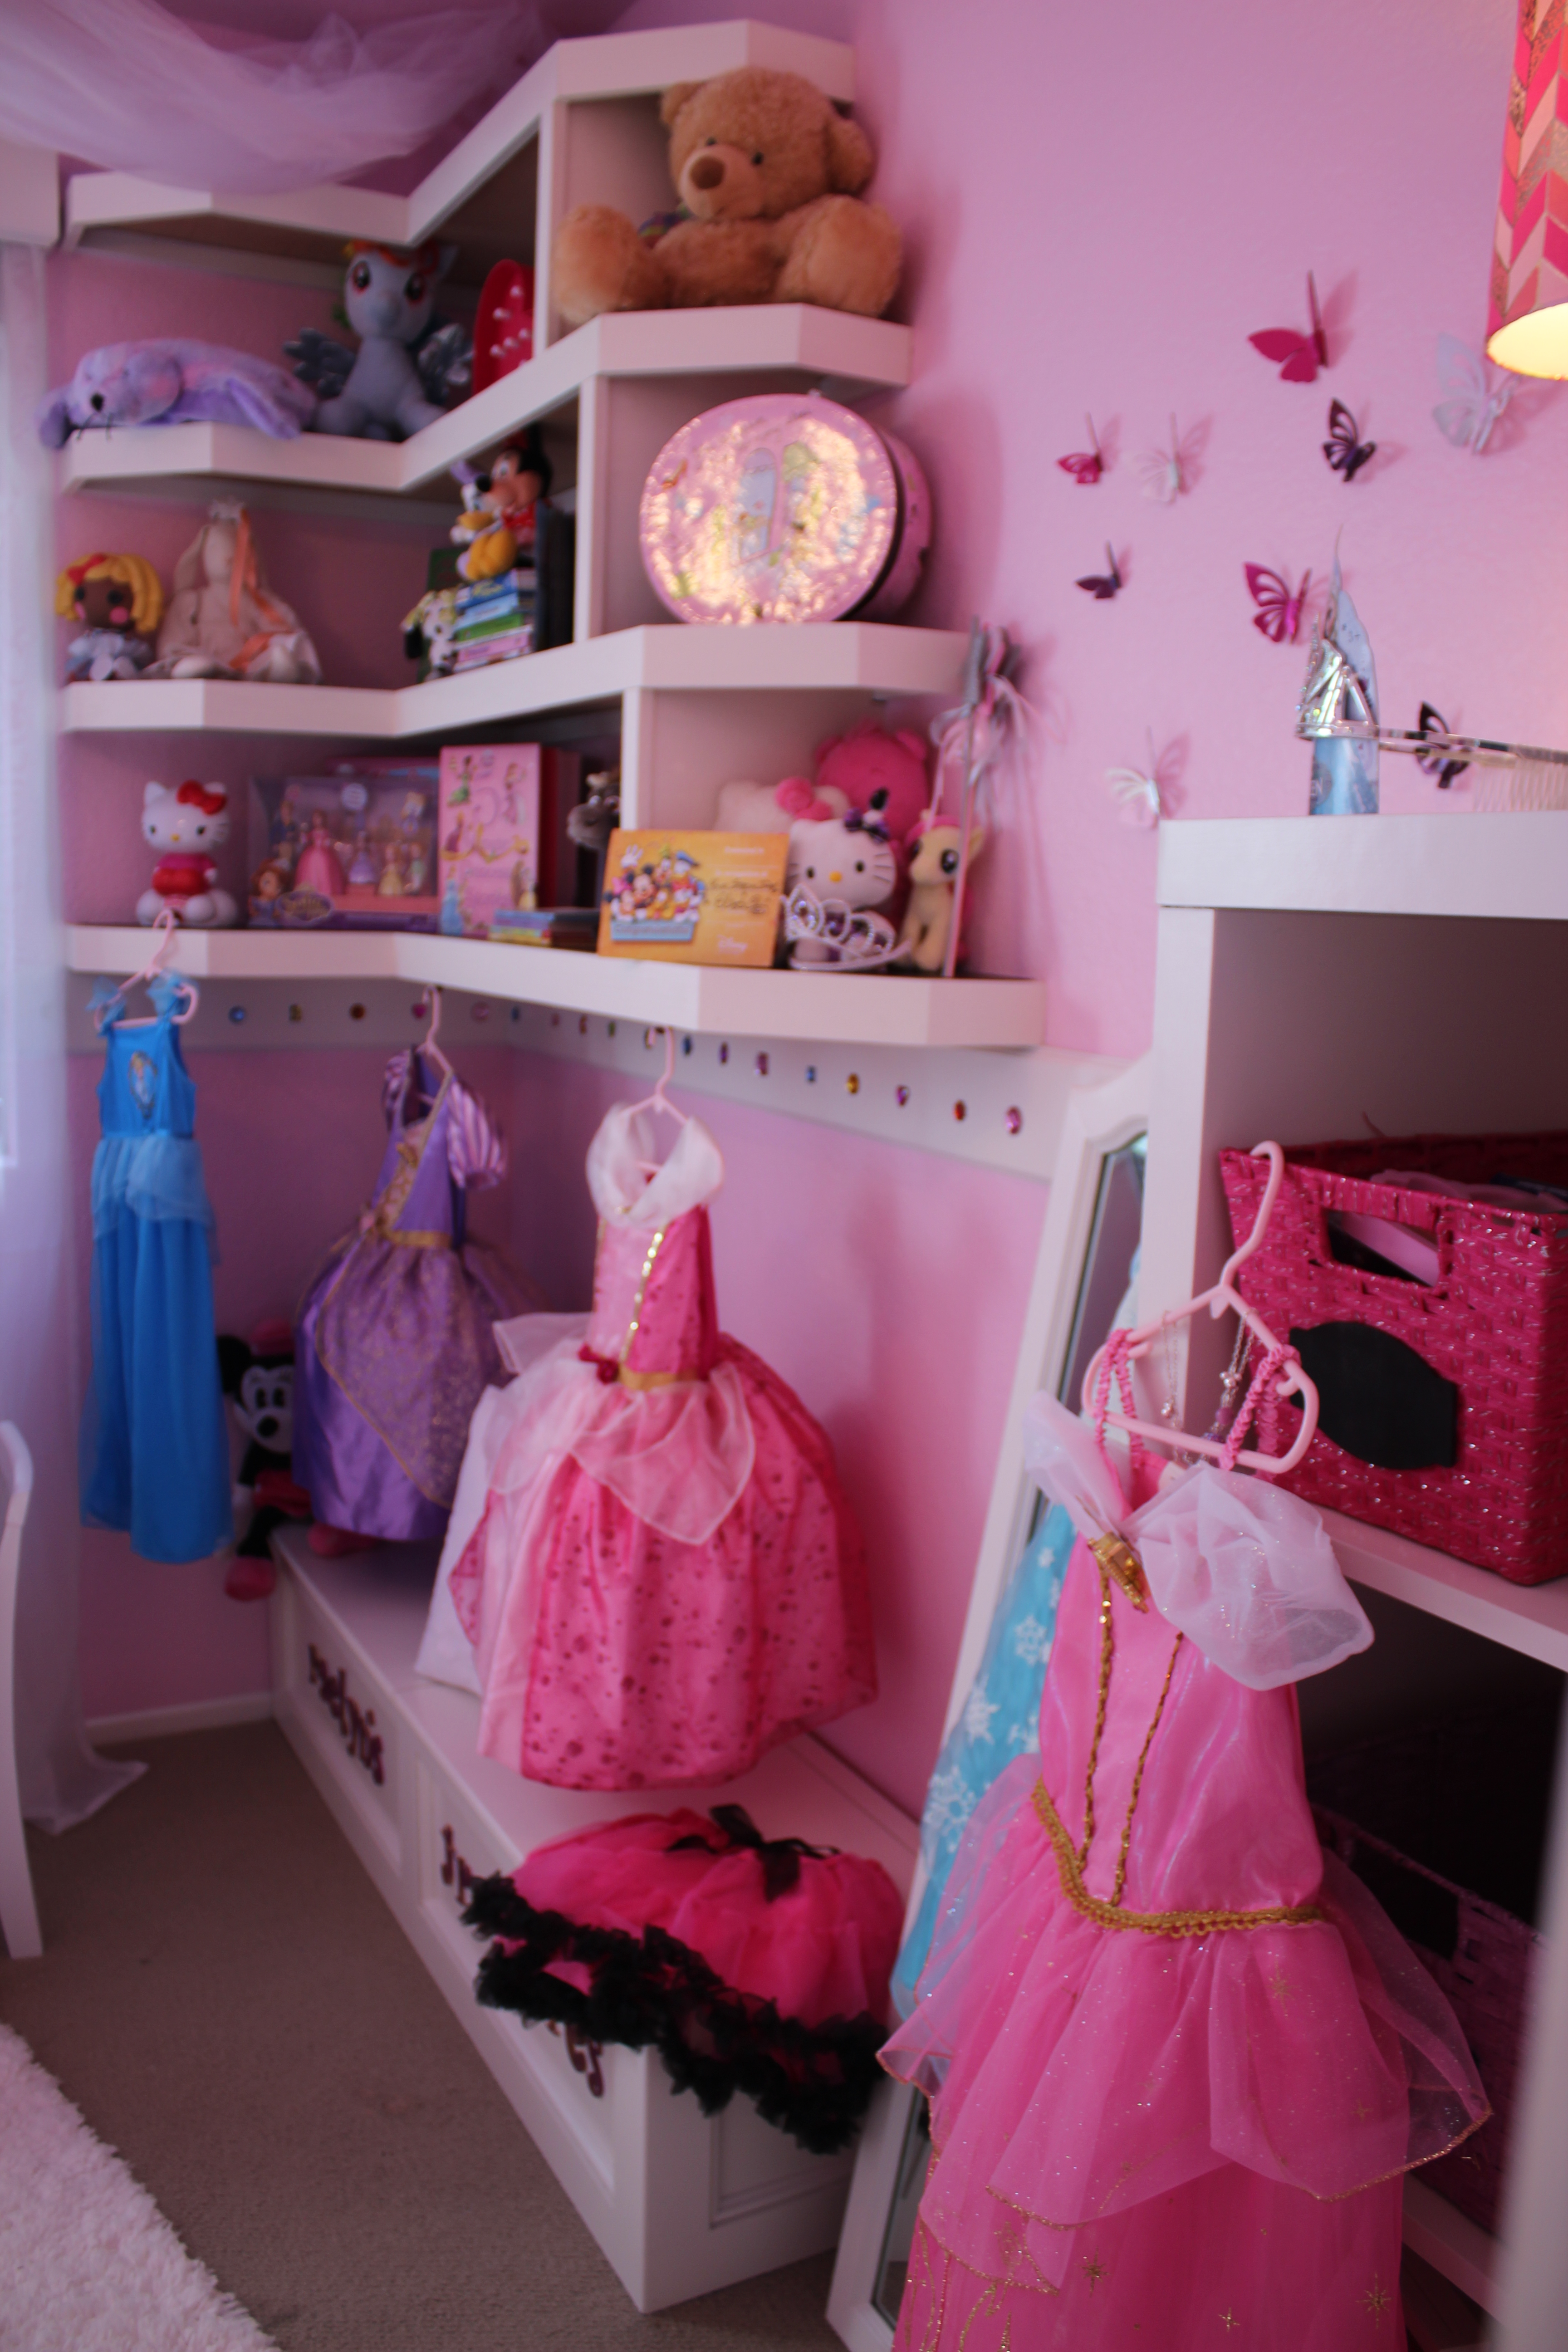 Volunteers with the nonprofit Special Spaces assisted San Clemente-based interior designer Paula Oblen in bringing 5-year-old Raelyn Beckler's dream to life. They successfully transformed her bedroom into a princess paradise, complete with pink walls, treasure chests and dresses galore. Photo: Andrea Papagianis